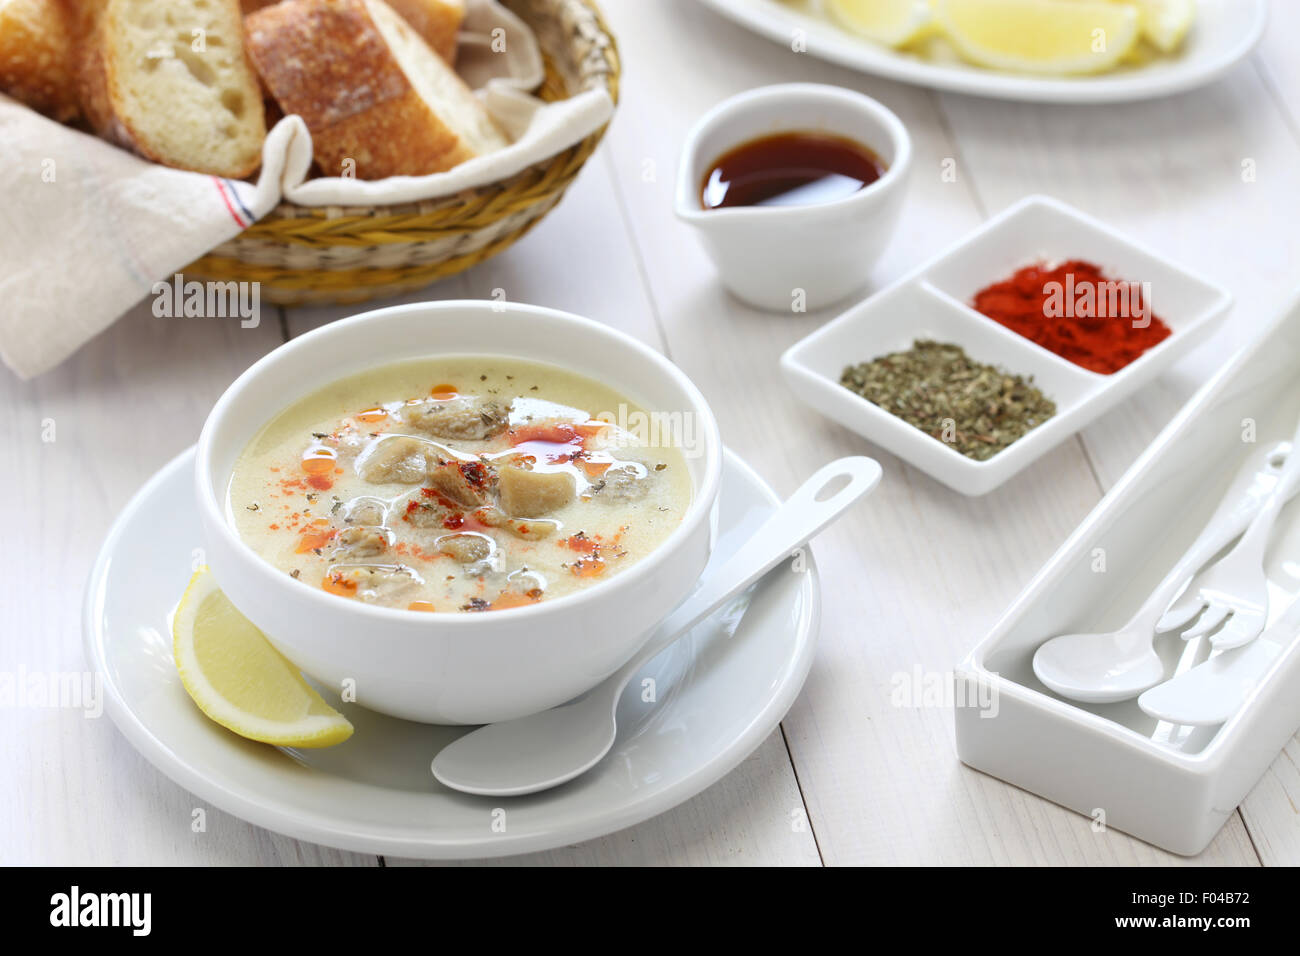 Tripe Stock Images, Royalty-Free Images &amp- Vectors | Shutterstock